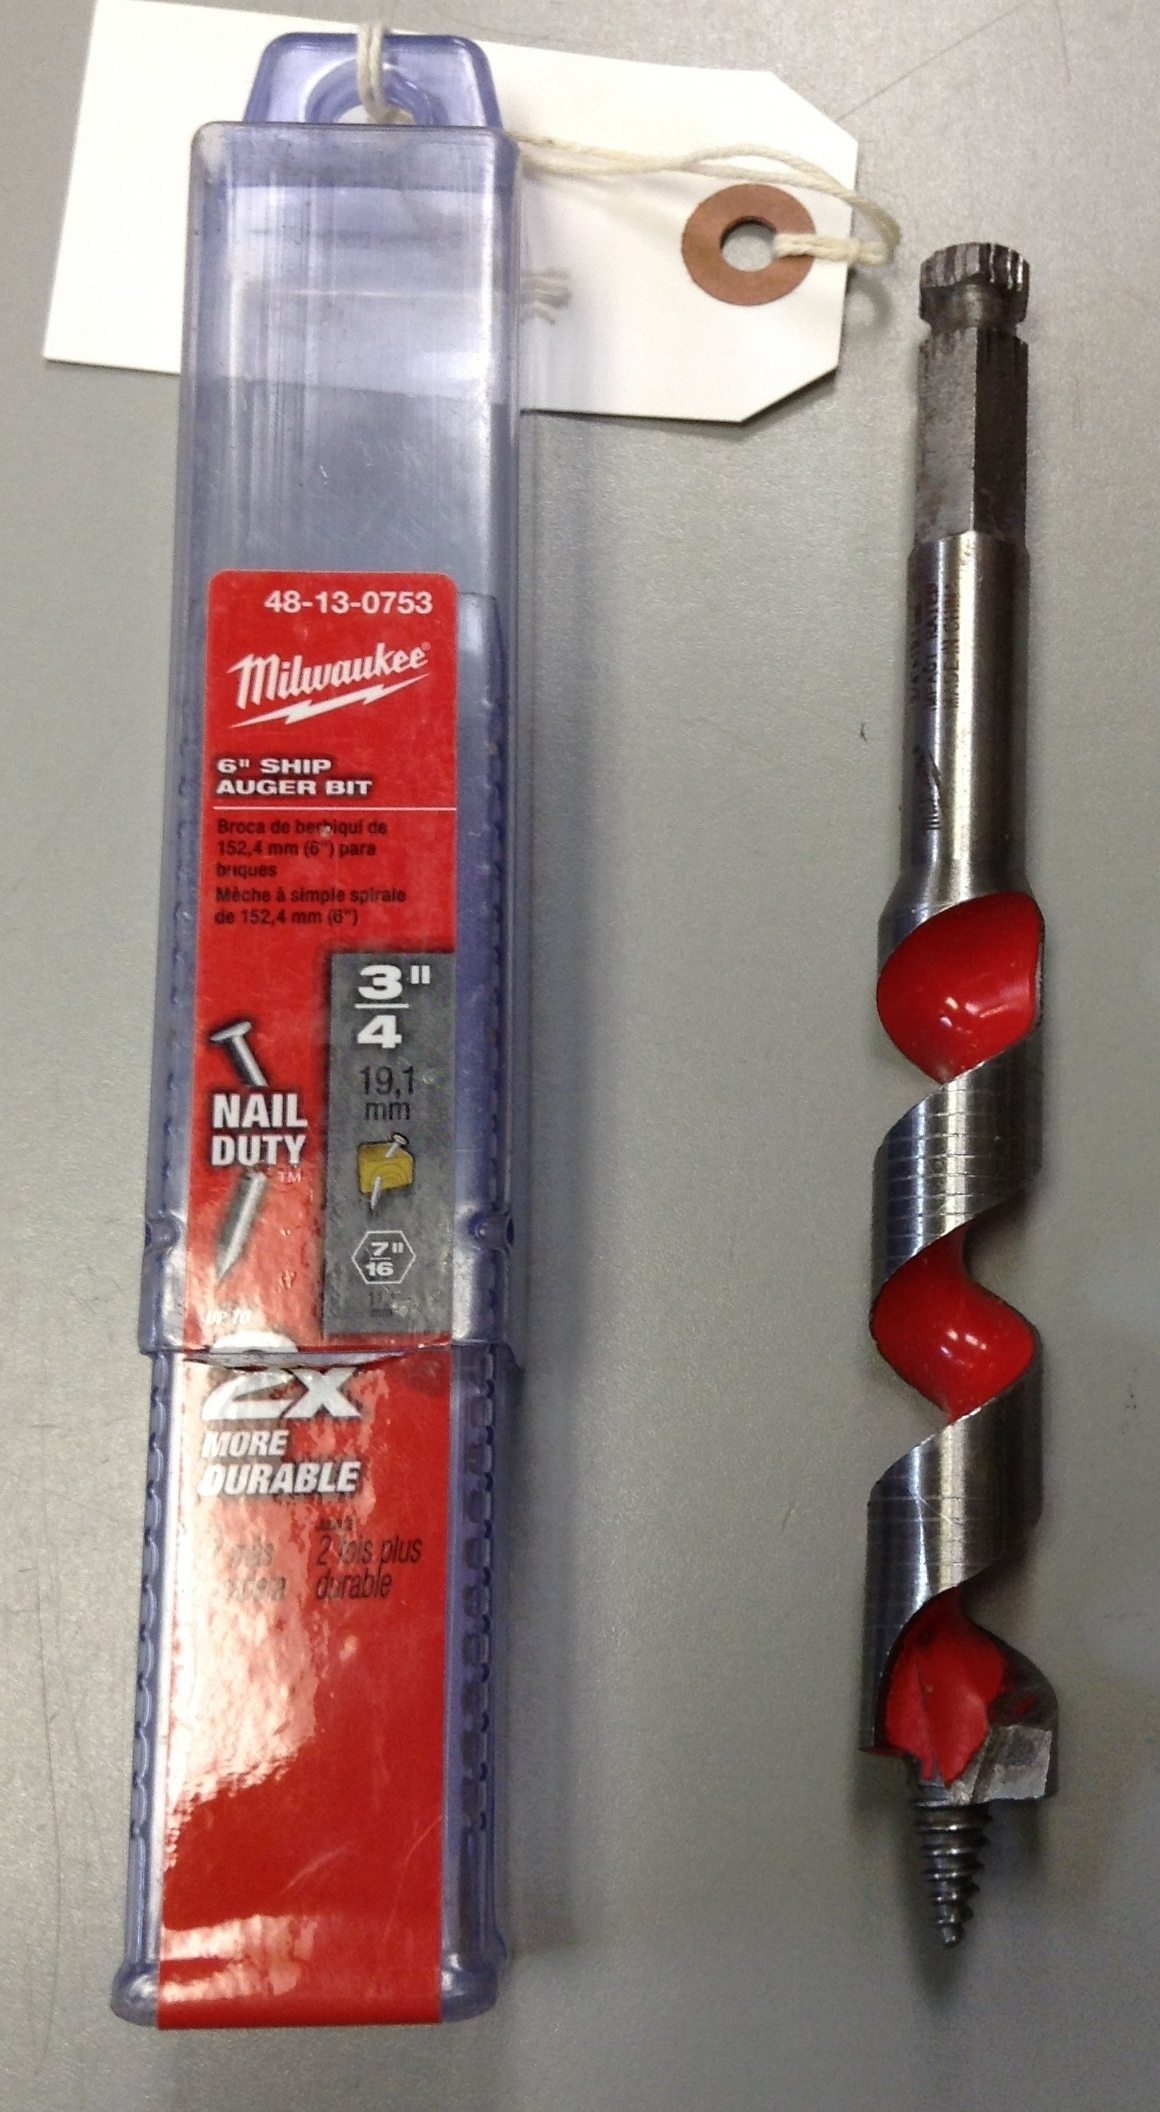 MILWAUKEE 6